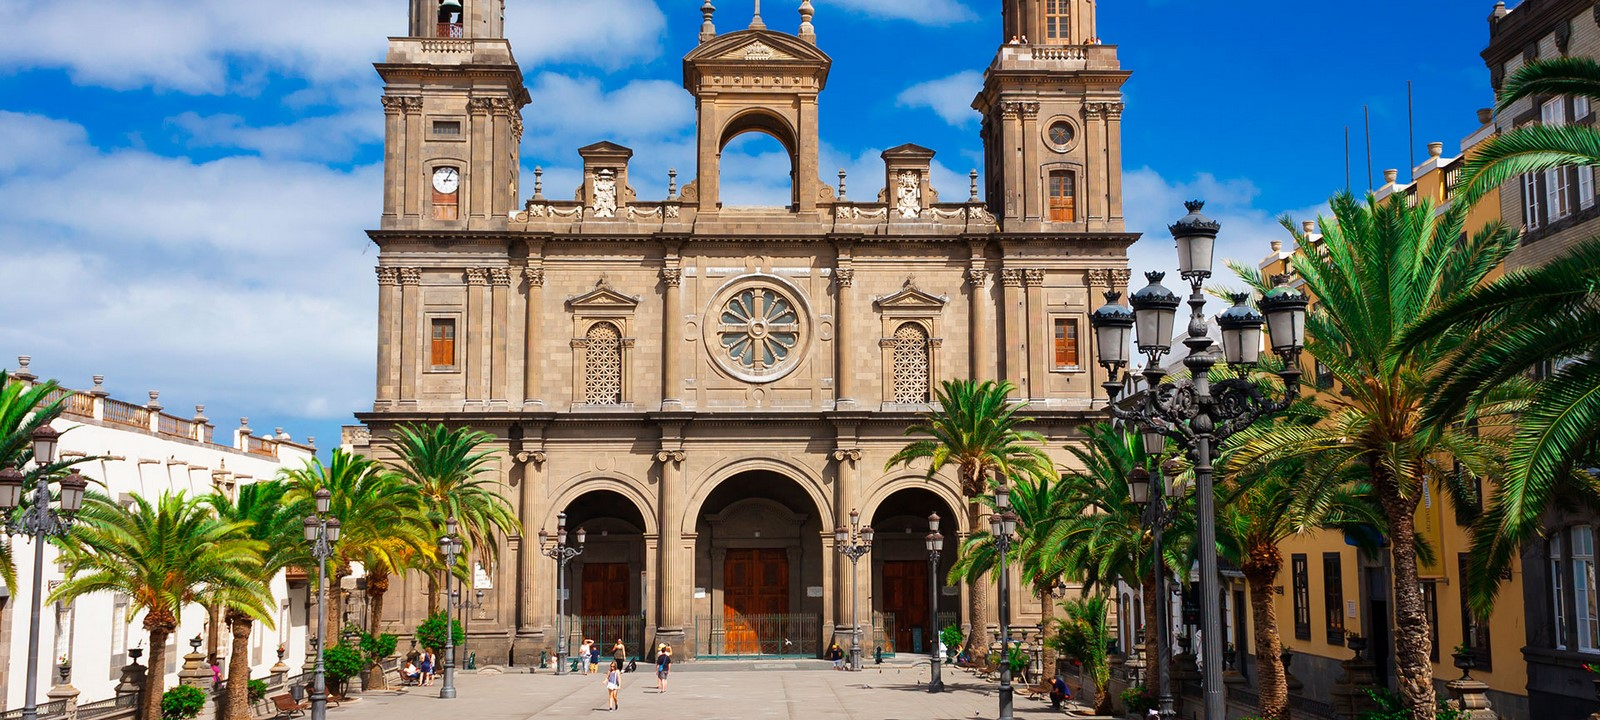 Architecture of Cities: Las Palmas: One of the largest cities in Spain Sheet8